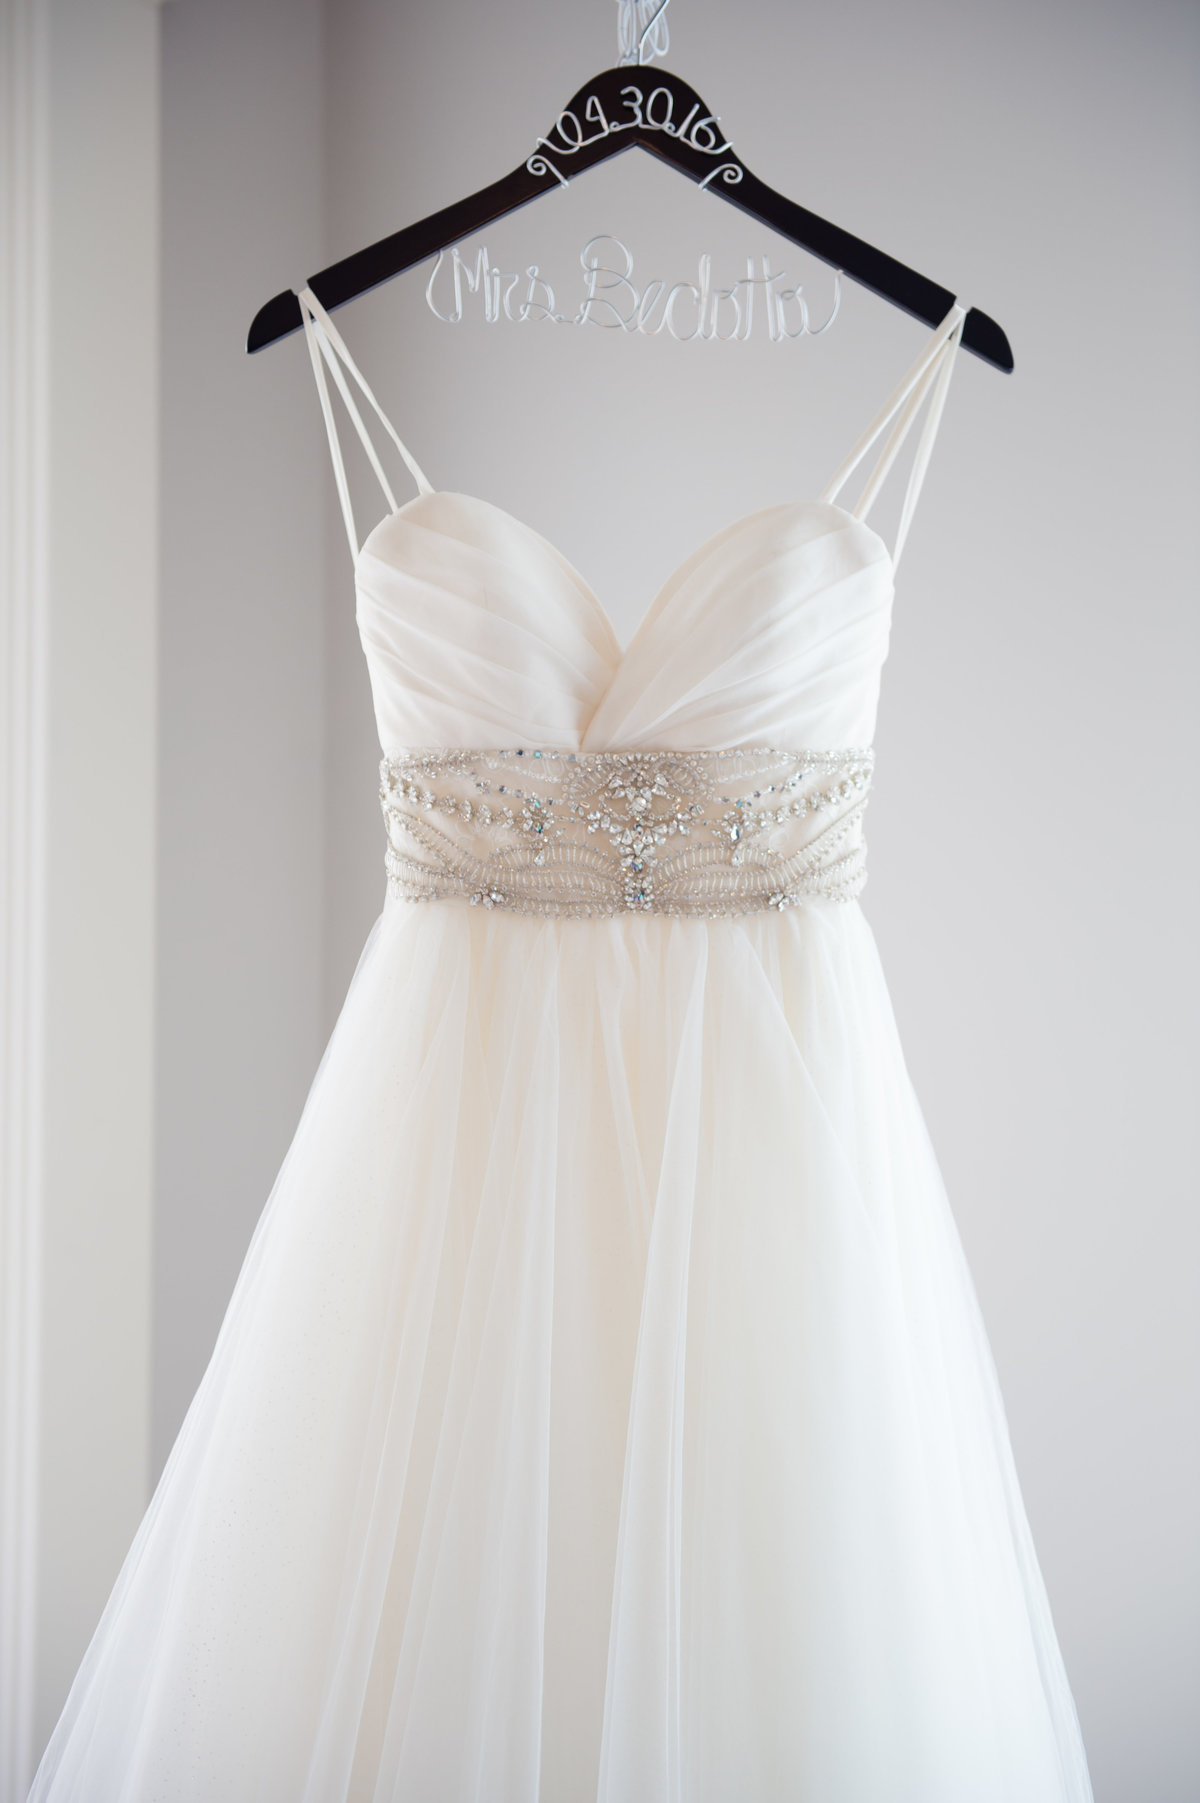 Bride's dress on hanger by Brittany Barclay Photography